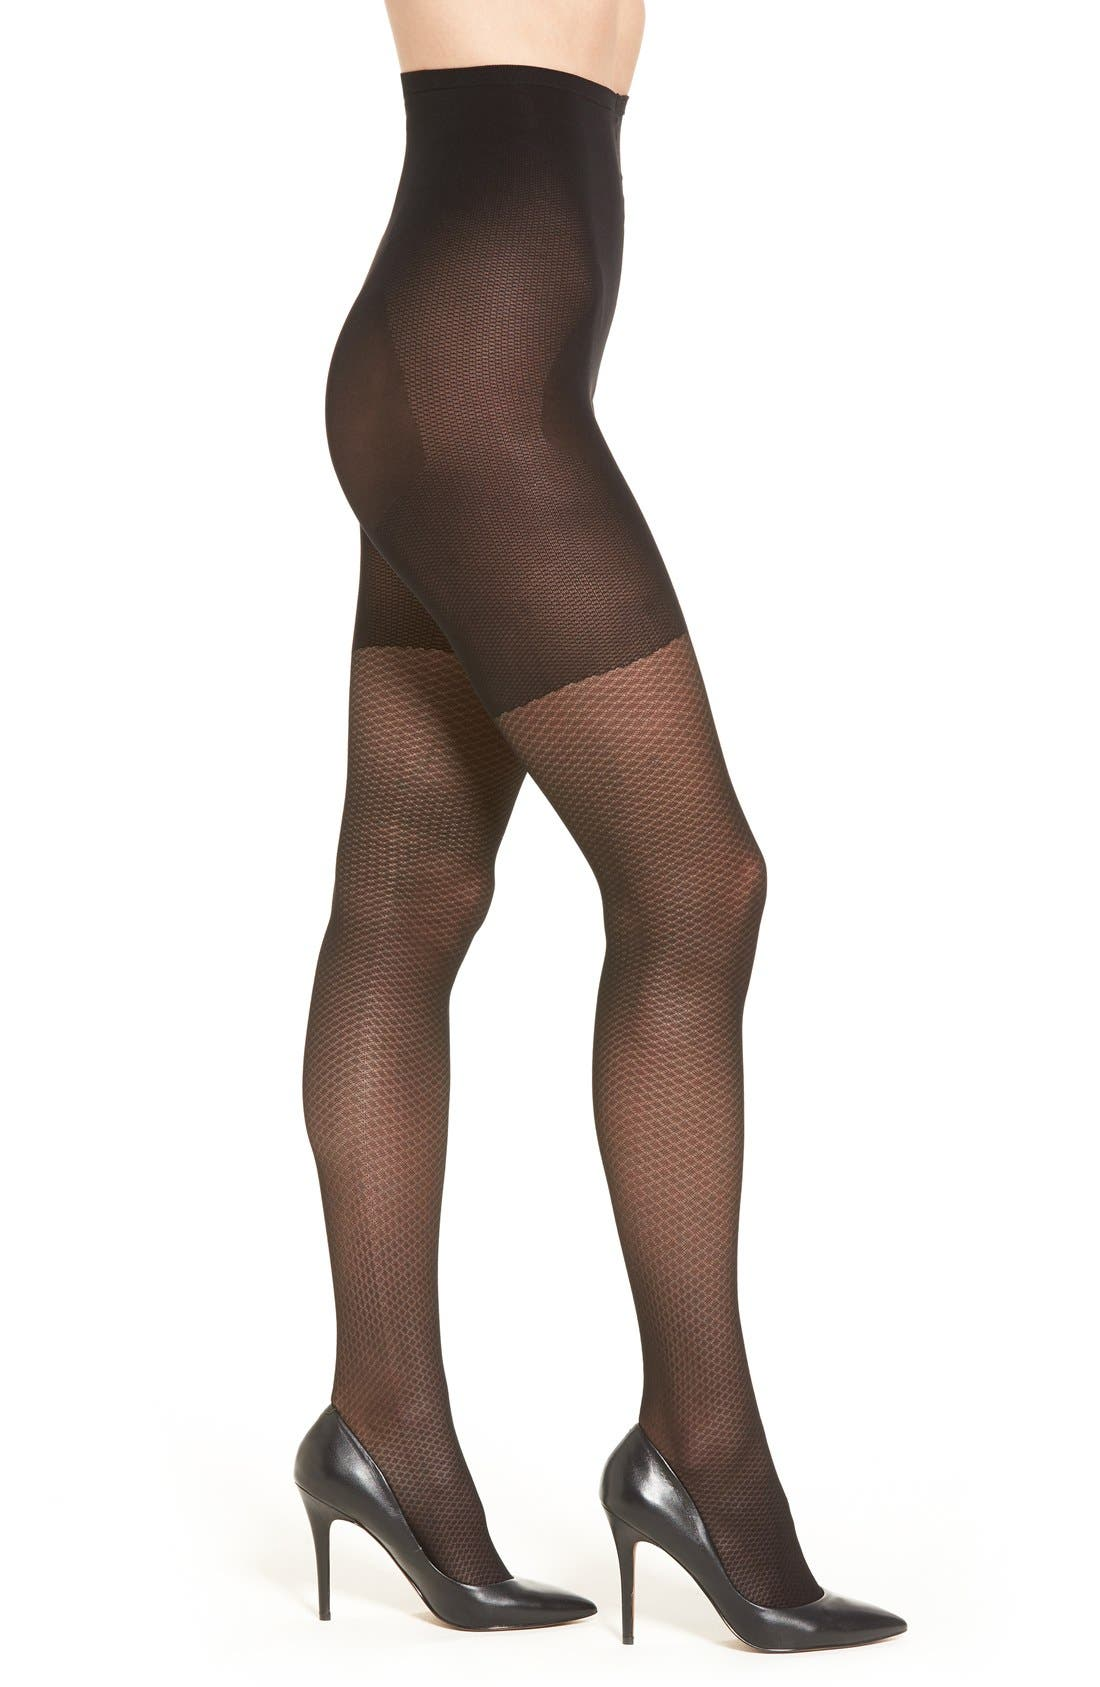 Easy On Control Top Tights,                             Alternate thumbnail 3, color,                             001